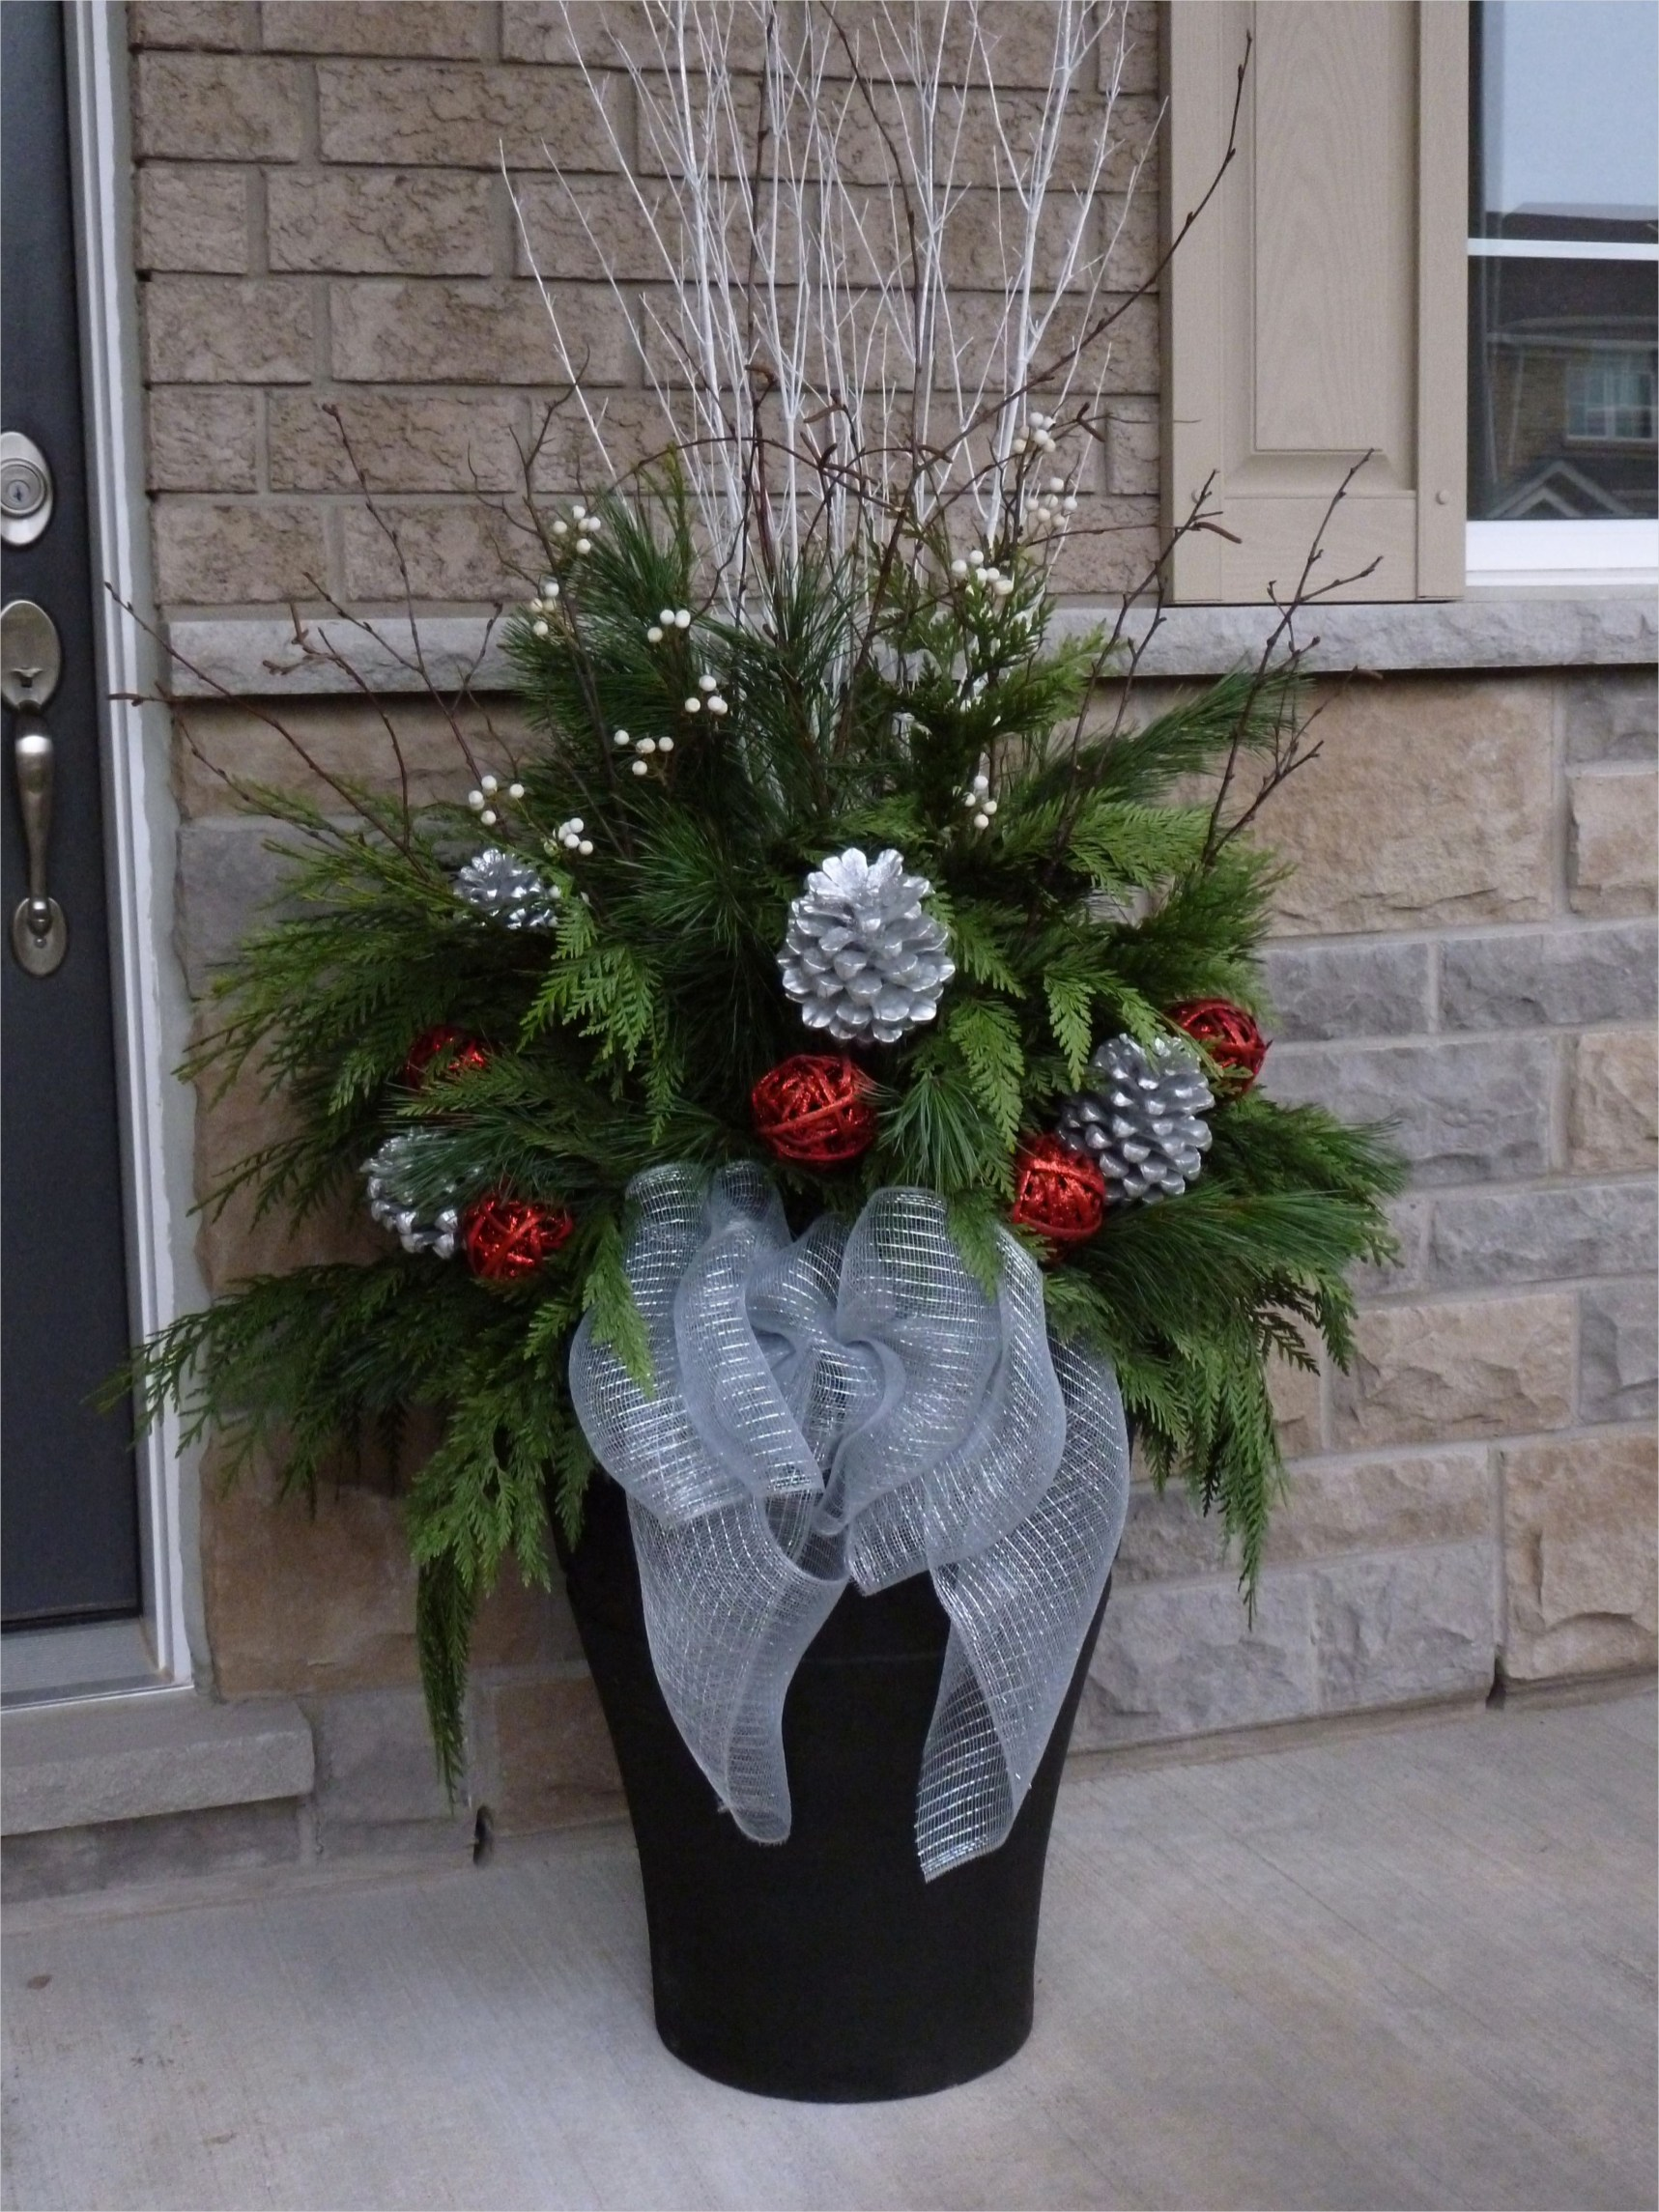 42 Beautiful Christmas Outdoor Pot Decorations Ideas 35 Christmas Planter by Ana Mateus Noël Guirlandes Et Pots Hiver Pinterest 4